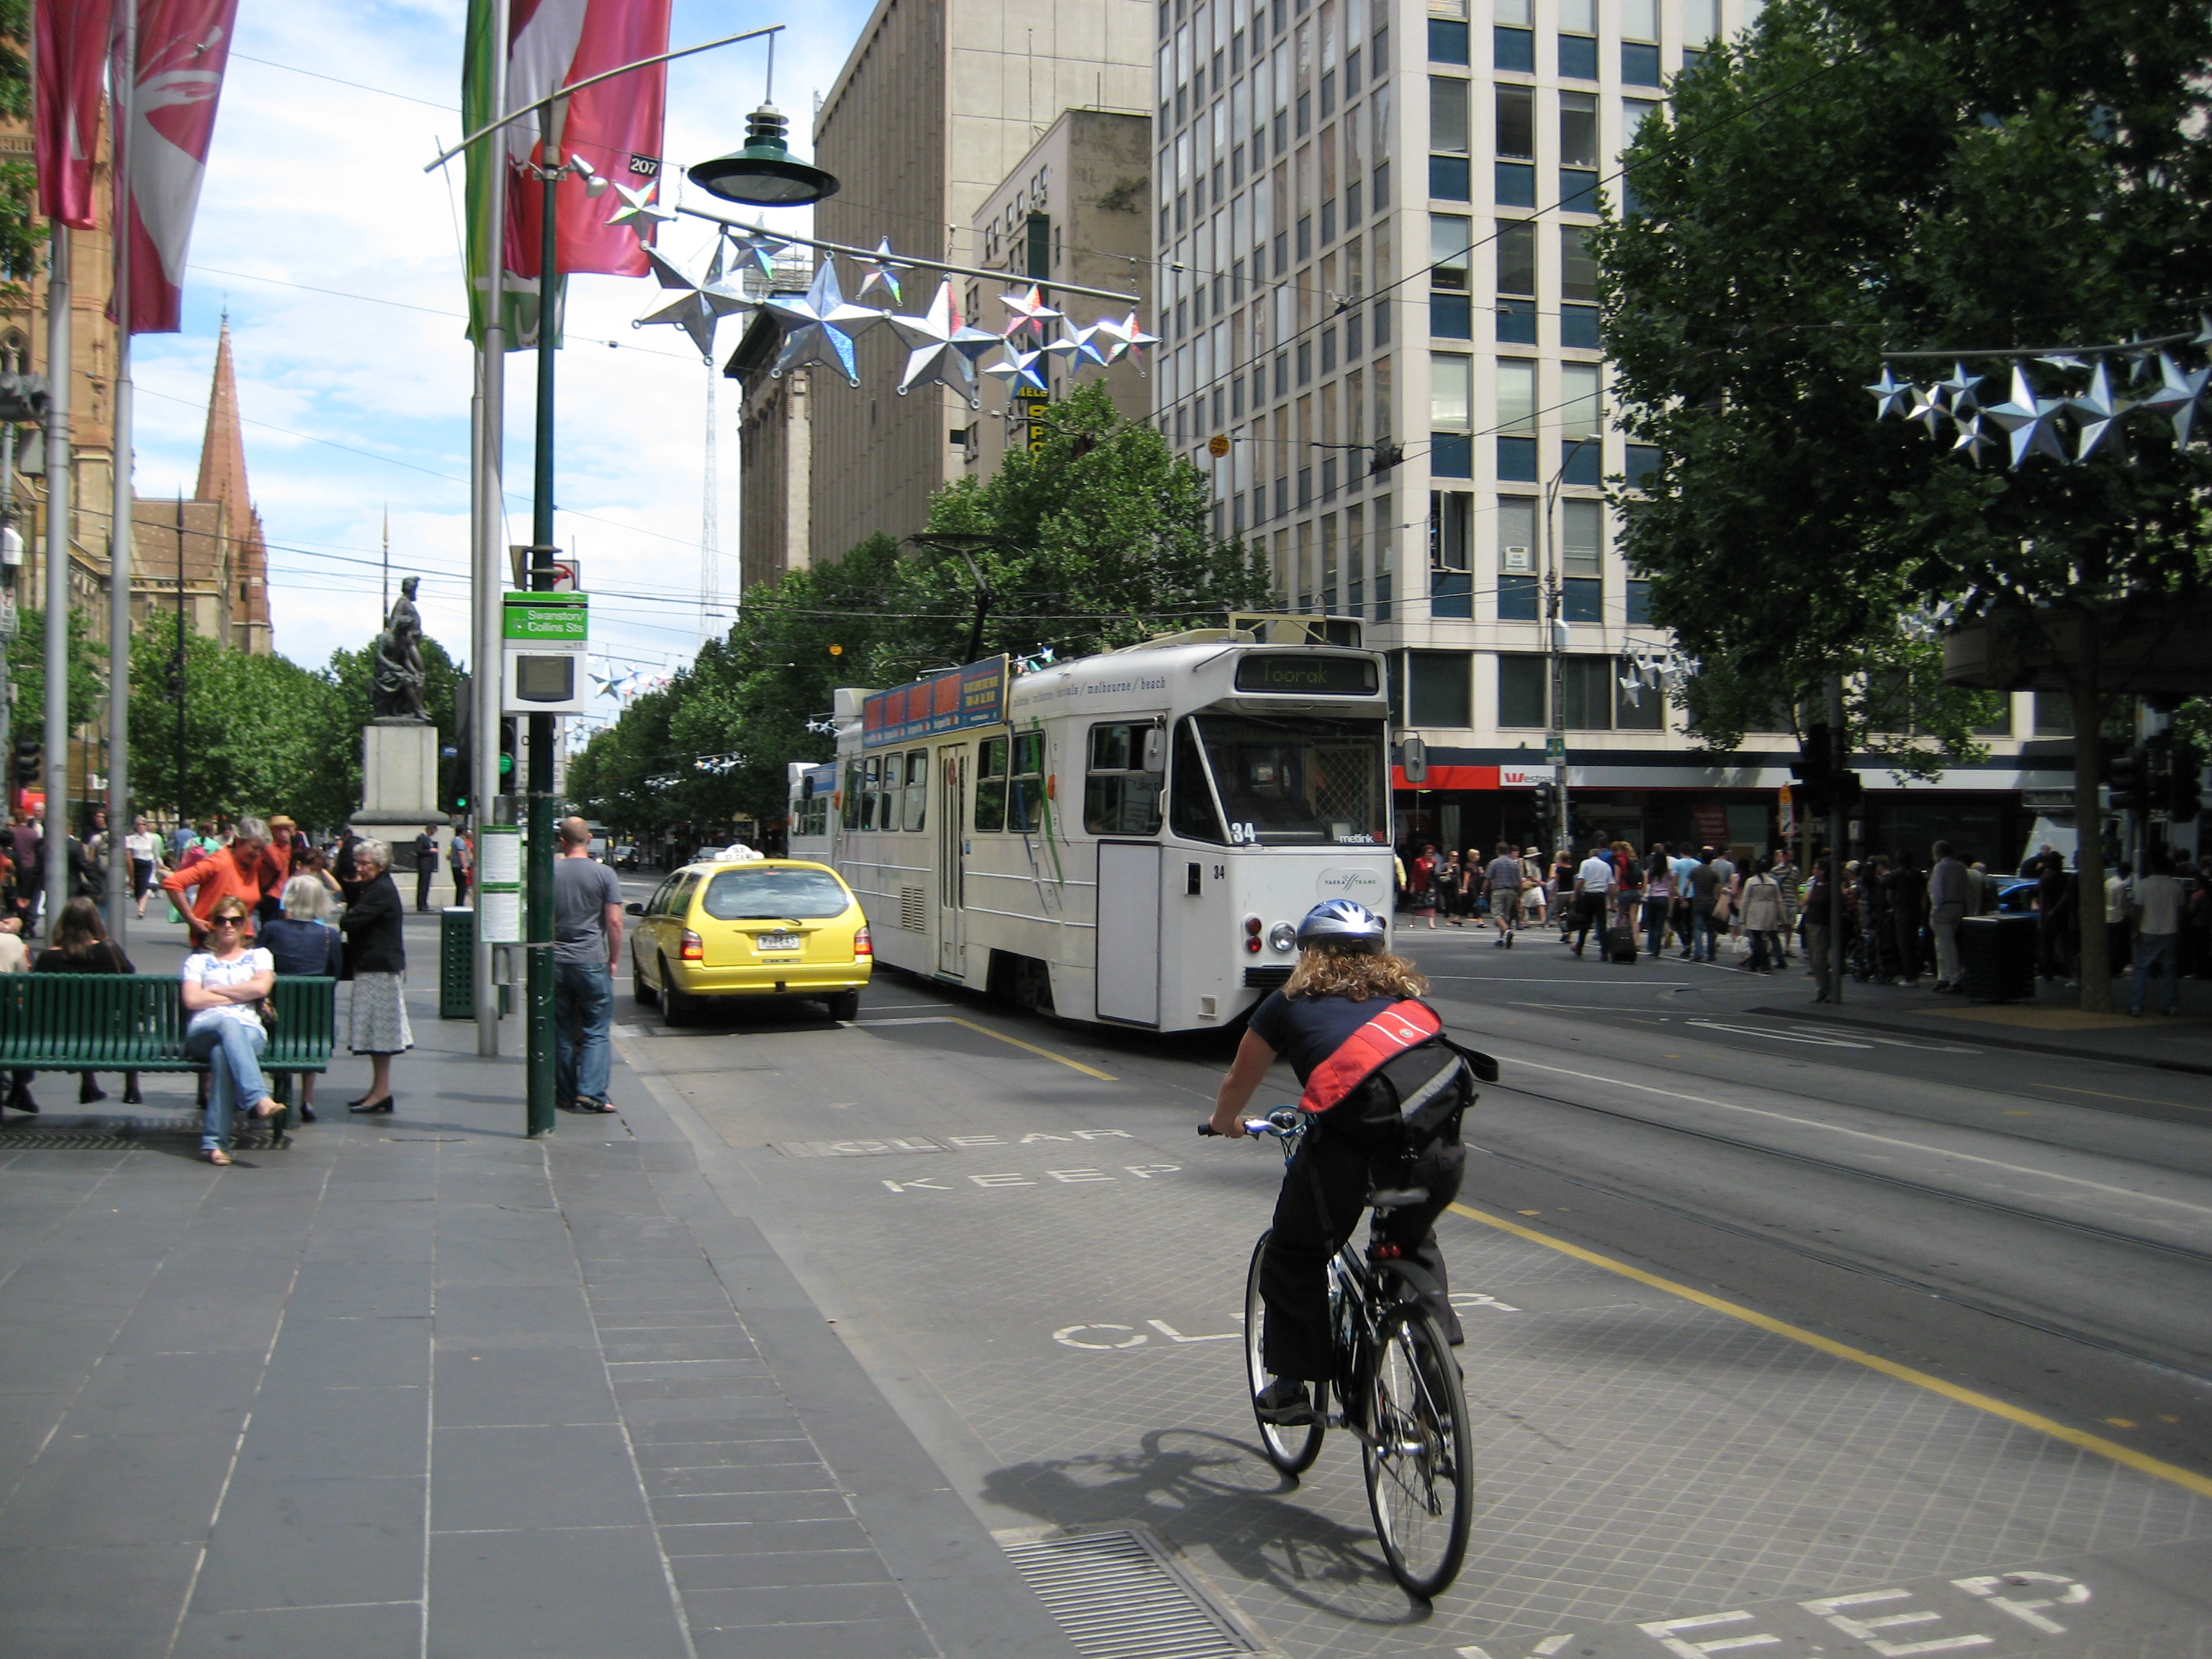 A bicycle courier on a busy Melbourne street, cycling behind a taxi. A tram is travelling in the opposite direction.